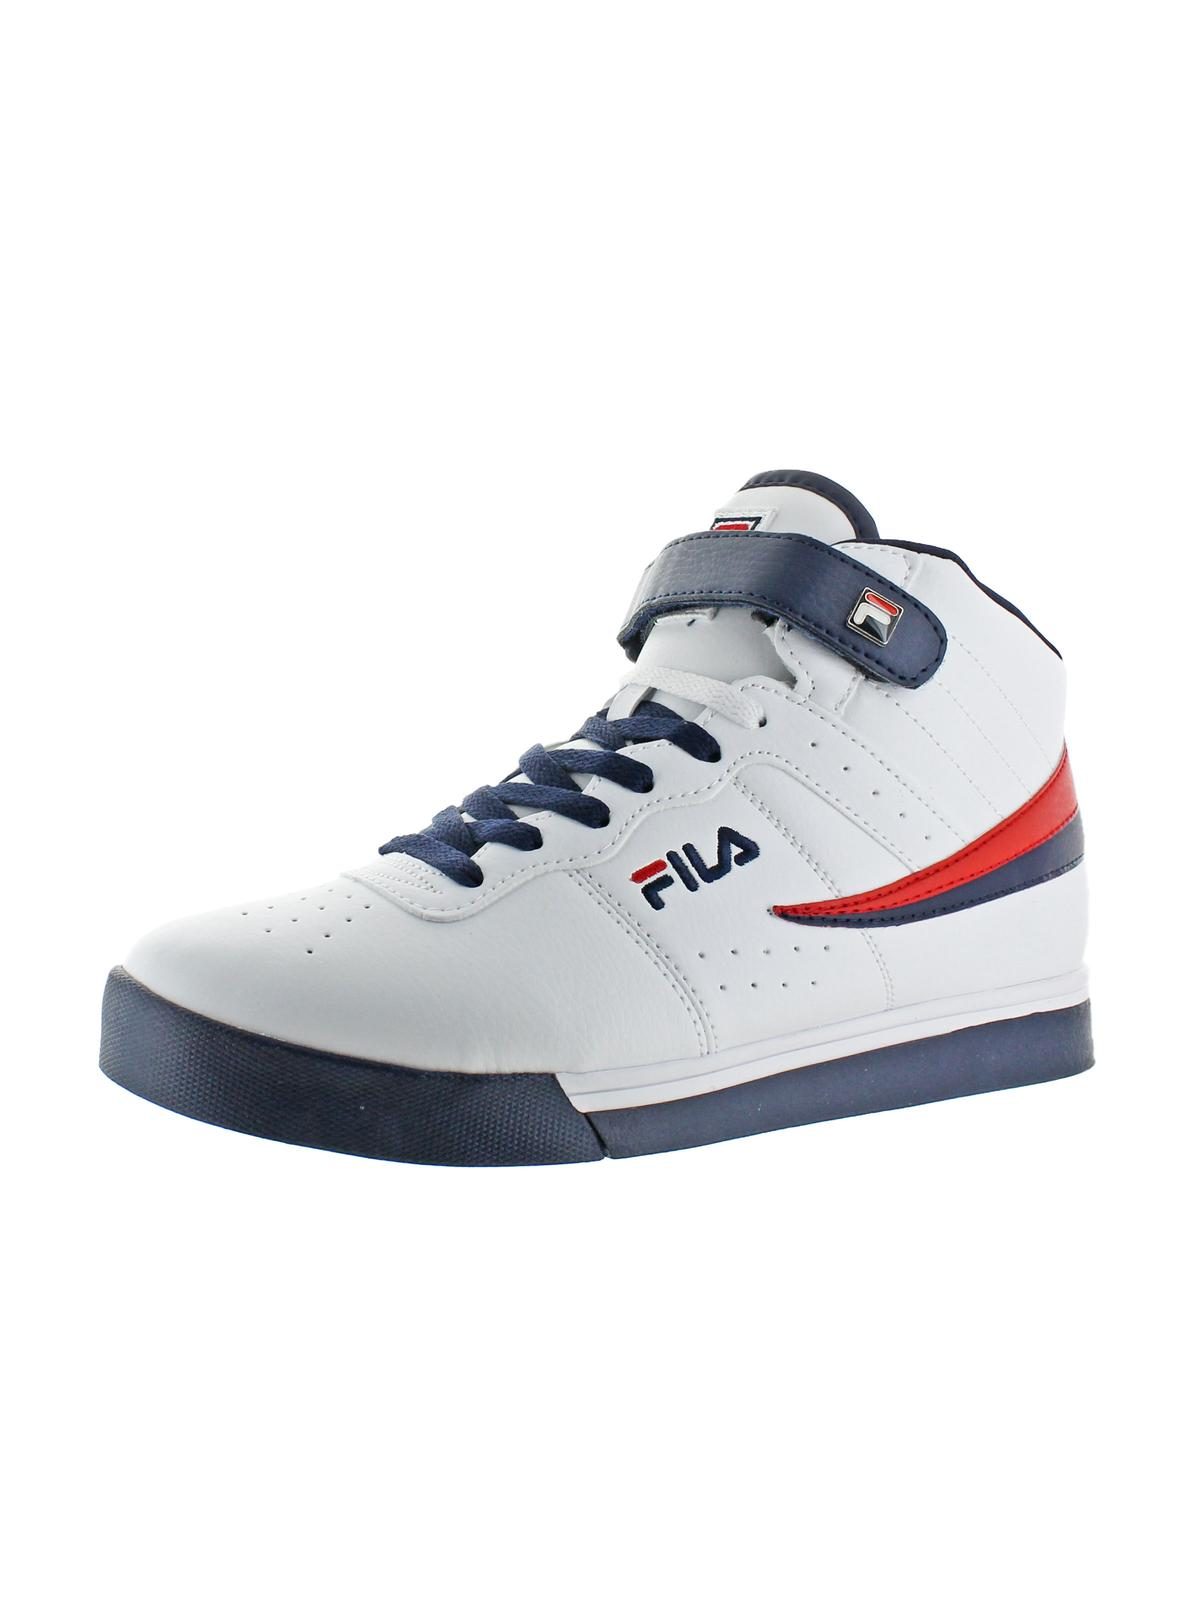 Fila Mens Vulc 13 Faux Leather Contrast Trim High Top Sneakers by Fila